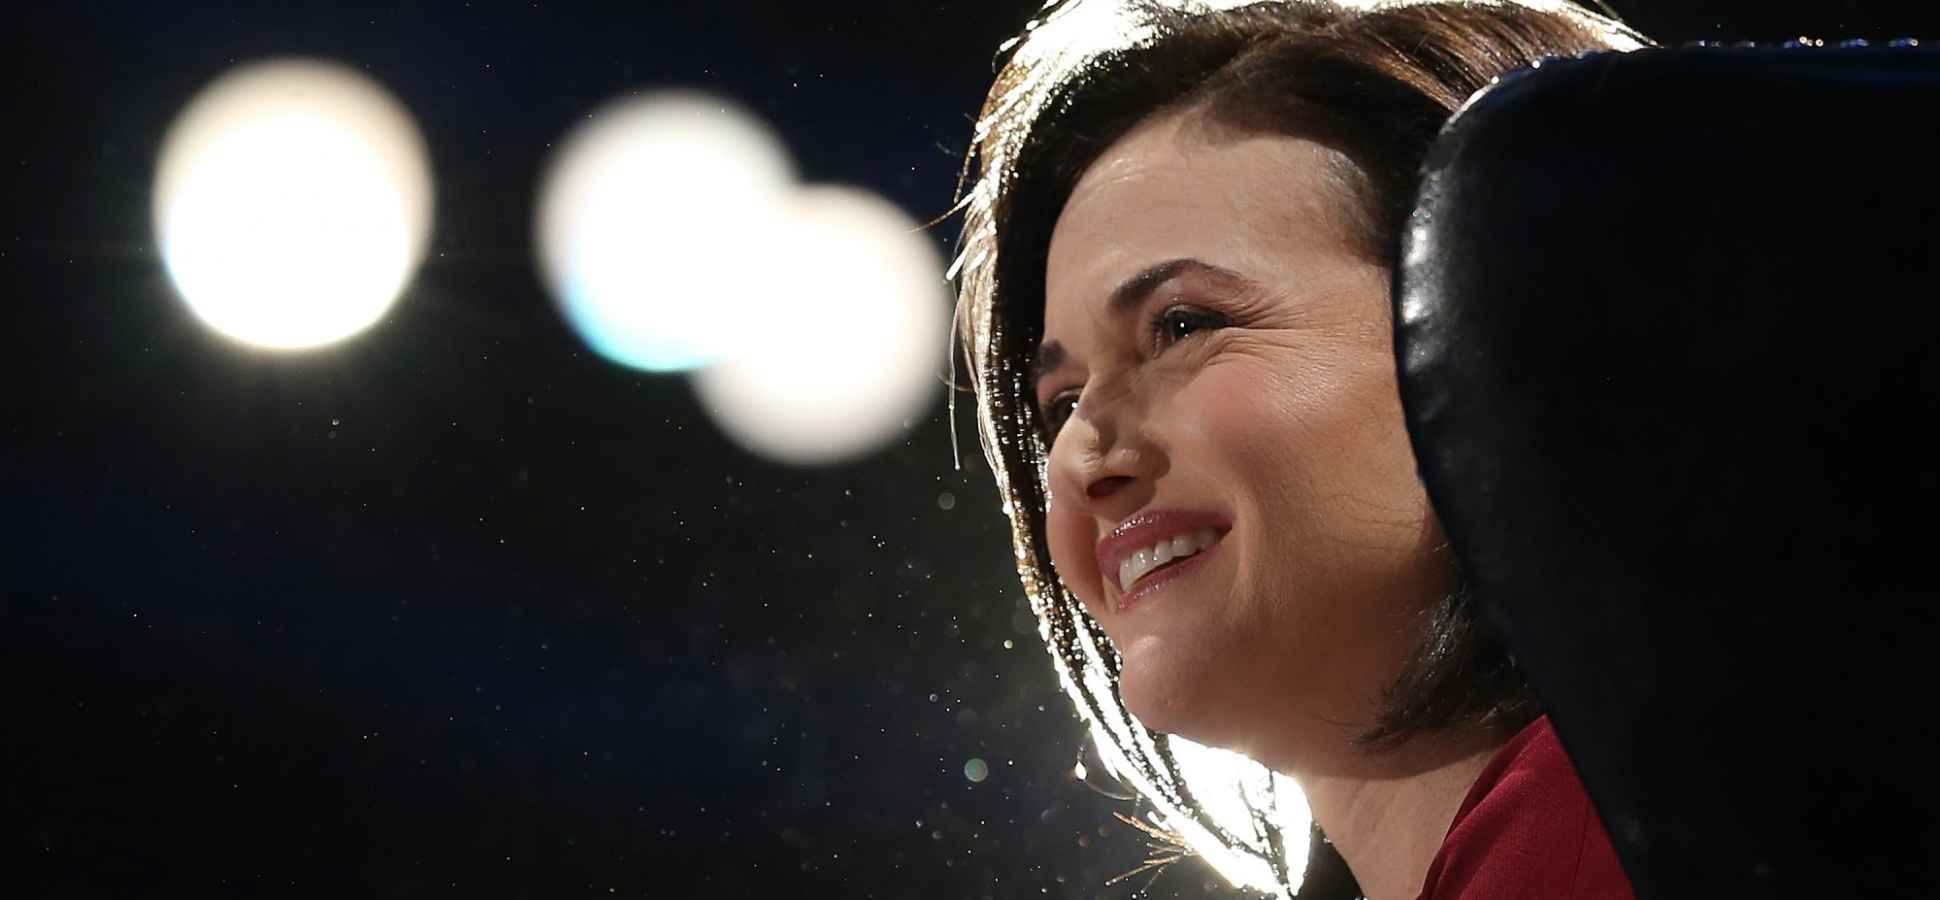 This Life Advice From Sheryl Sandberg Can Make You a Better Business Leader